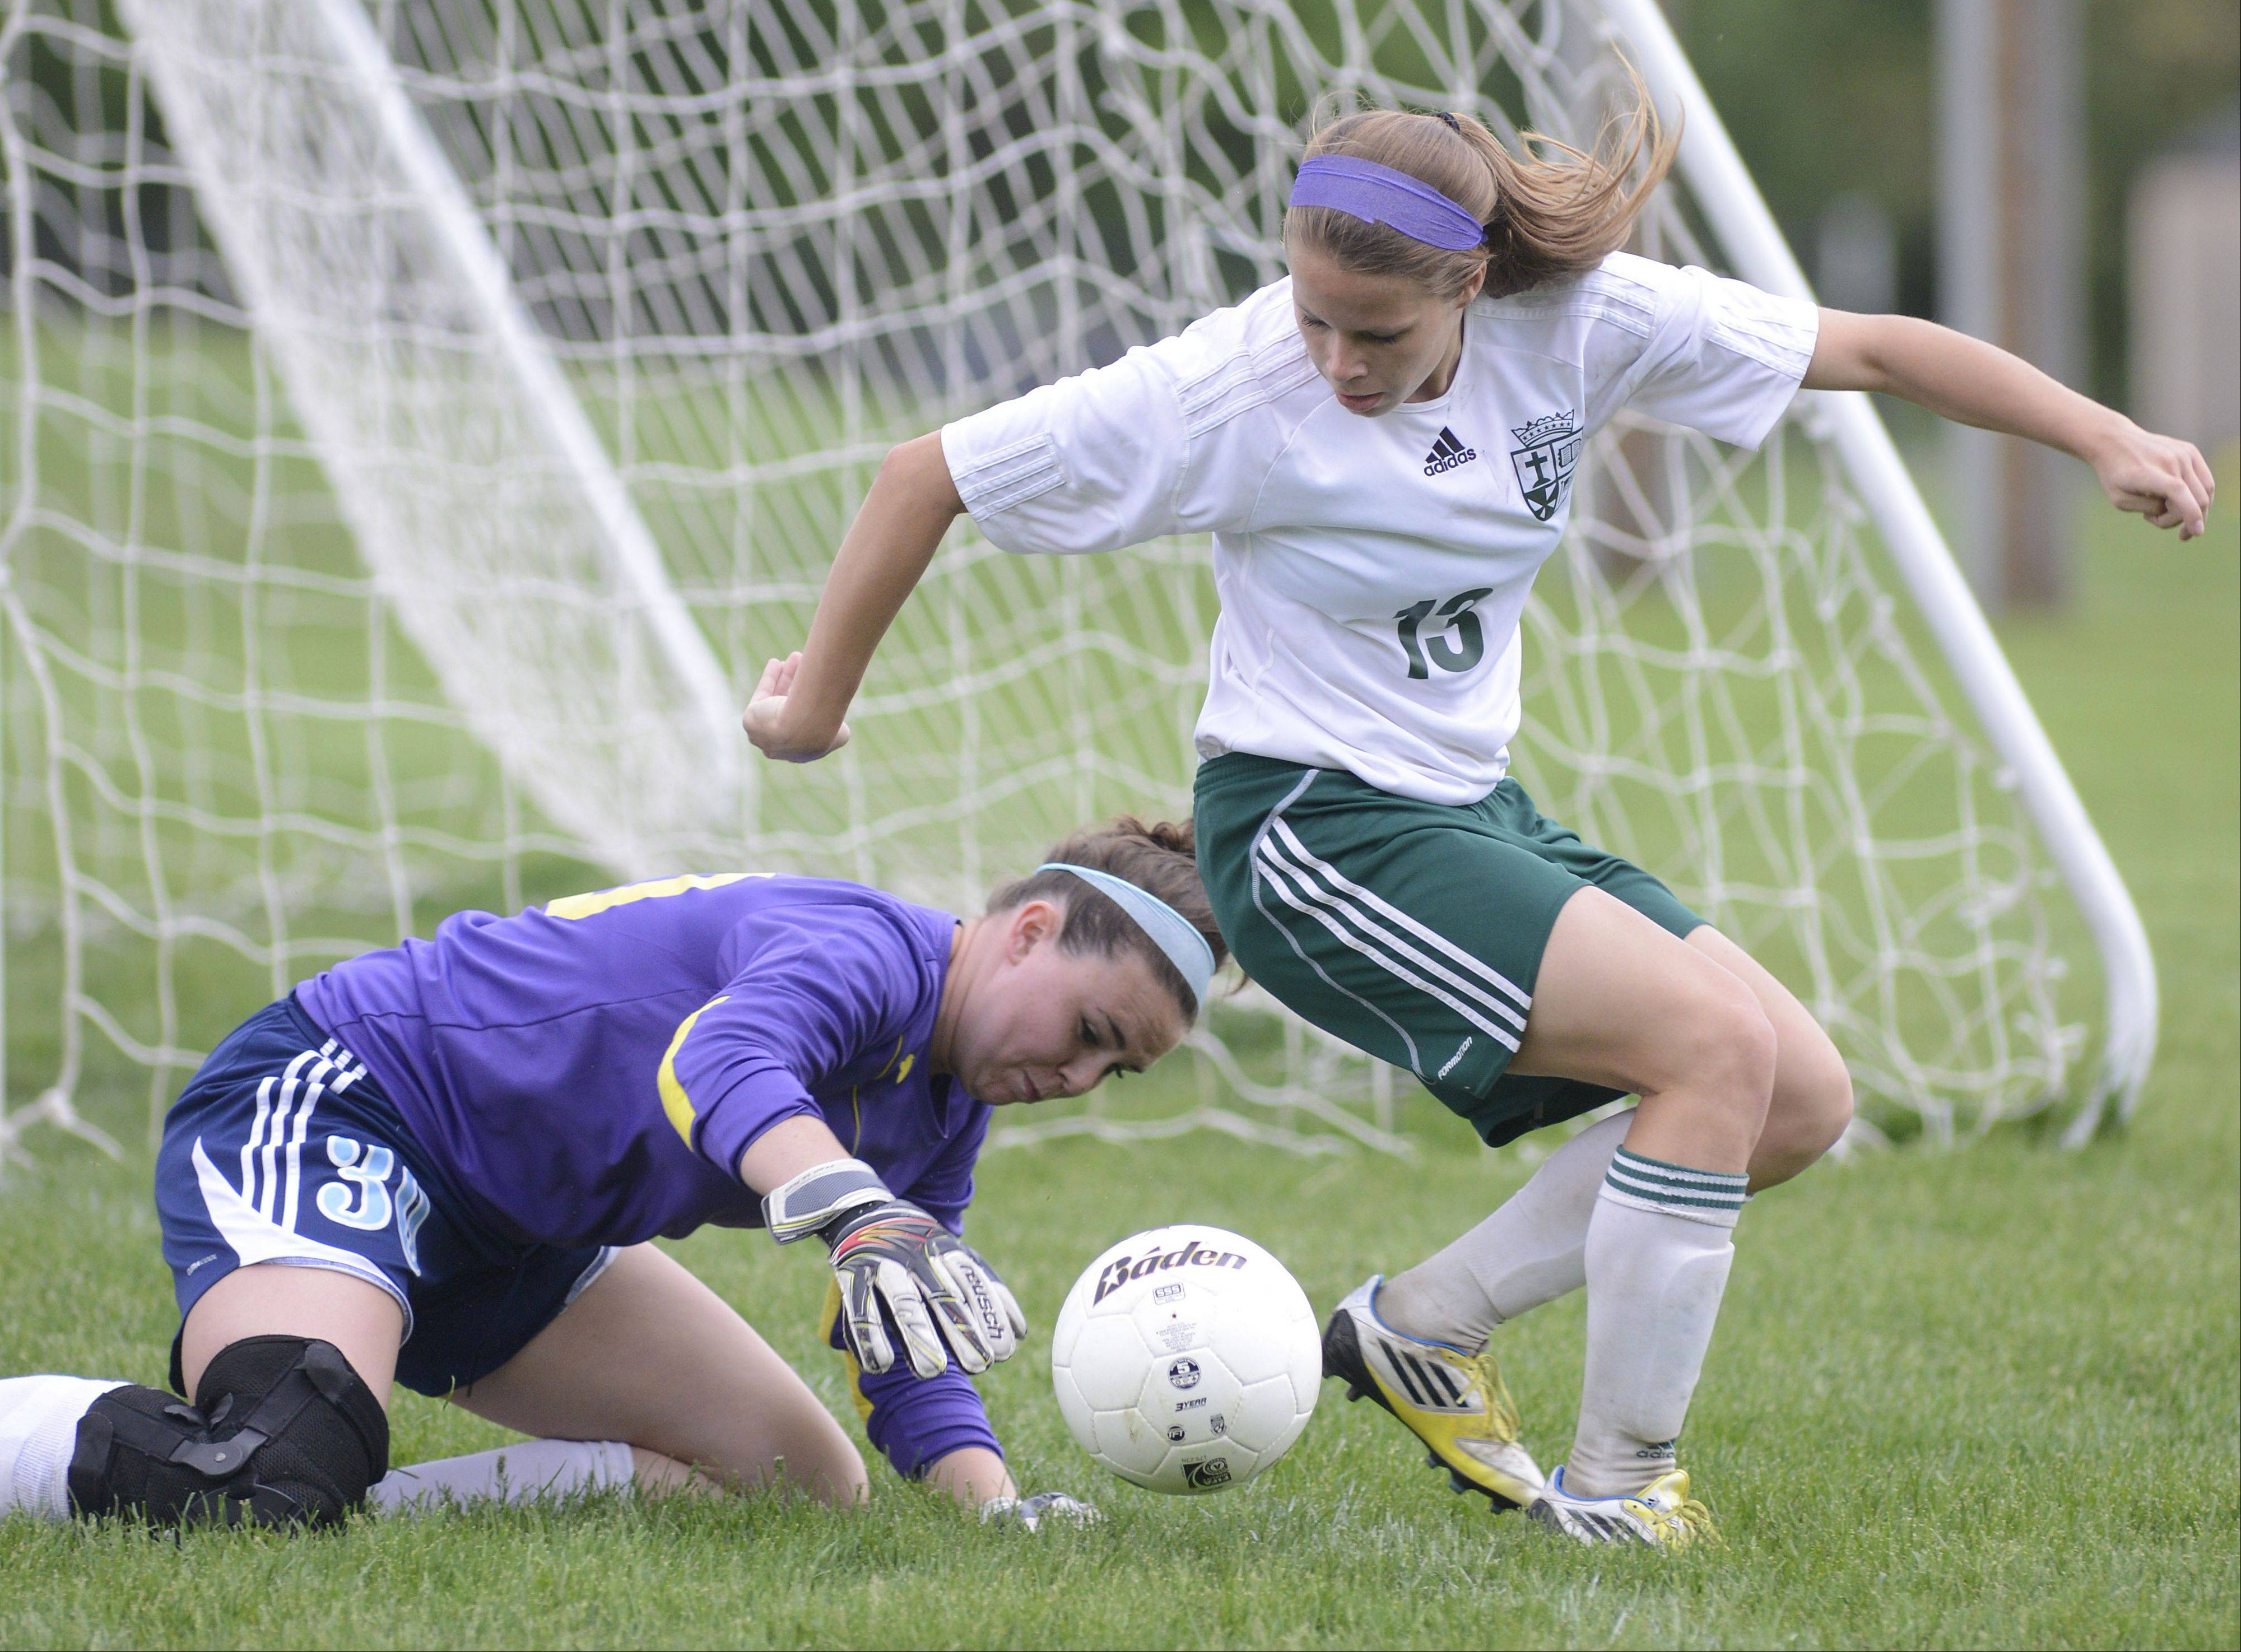 Willows Academy goalie Bethy Hunt attempts to capture the ball after a drive on the net by St. Edward's Meagan Kearney in the first half of the Class 1A girls soccer sectional title game on Friday, May 17.